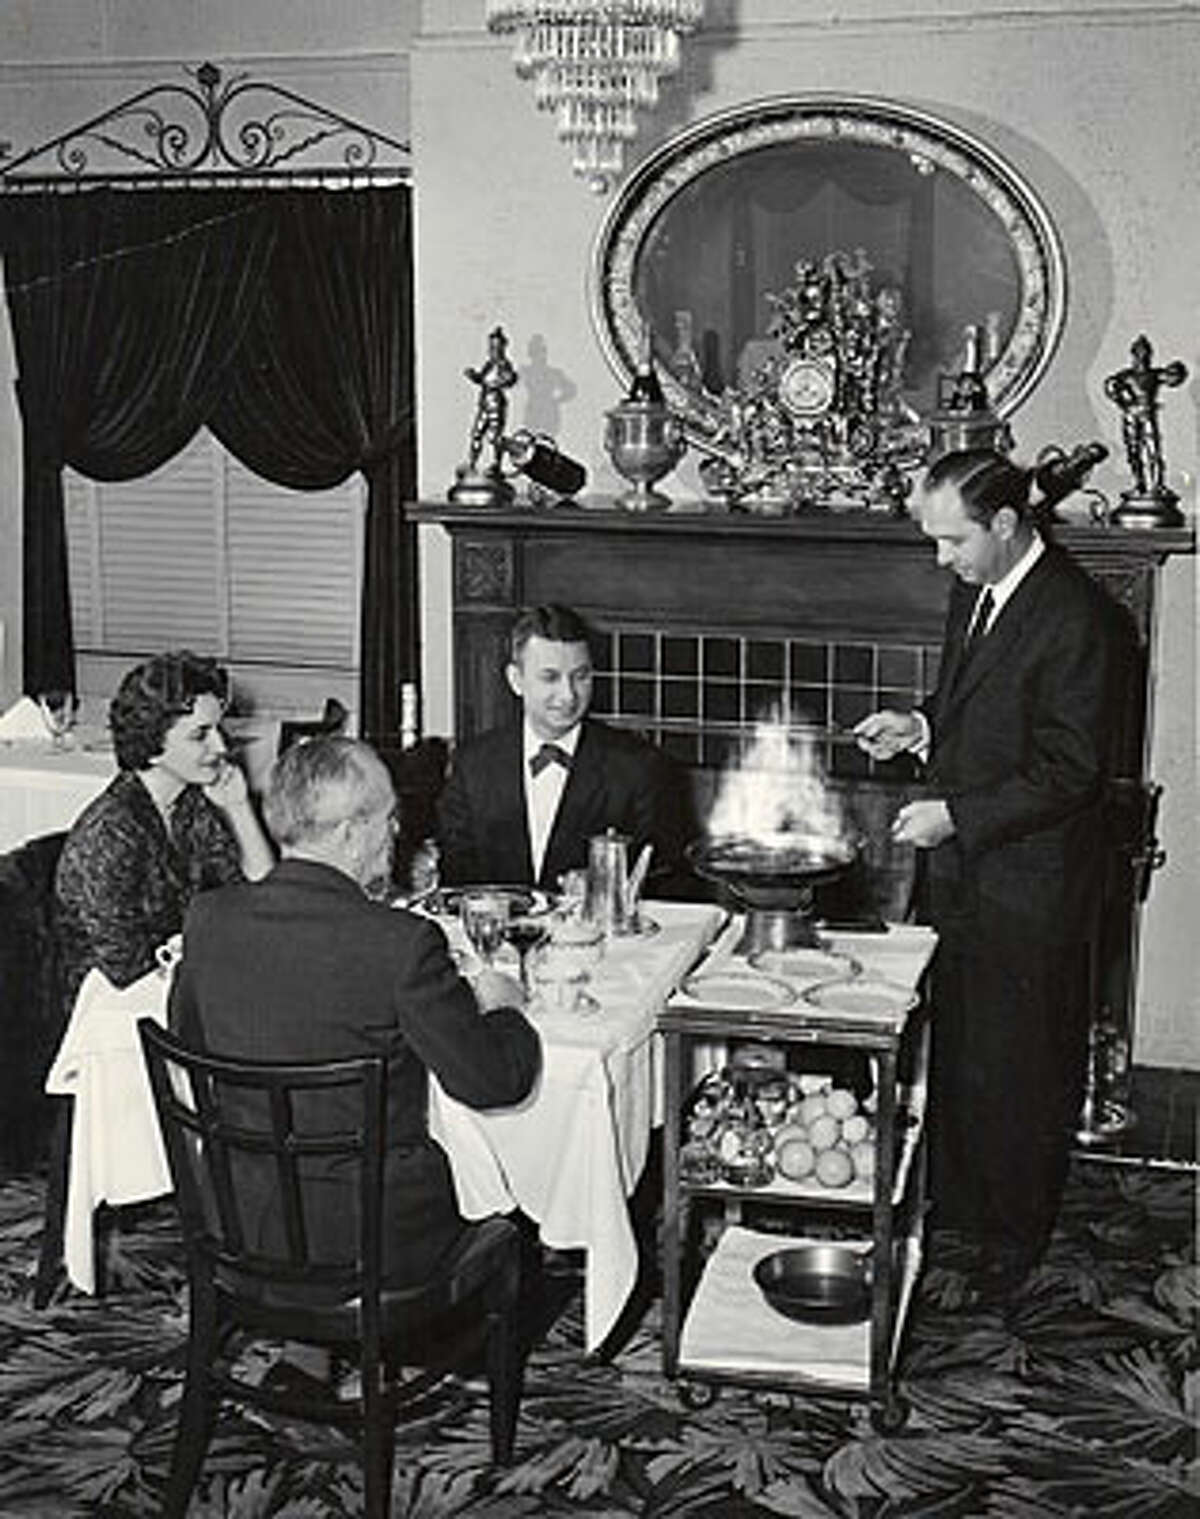 George Dareos (right) flames Crepes Suzette for his brother Pete Dareos, his sister-in-law Irene Dareos and friend Alexandre Jouffray in 1962.